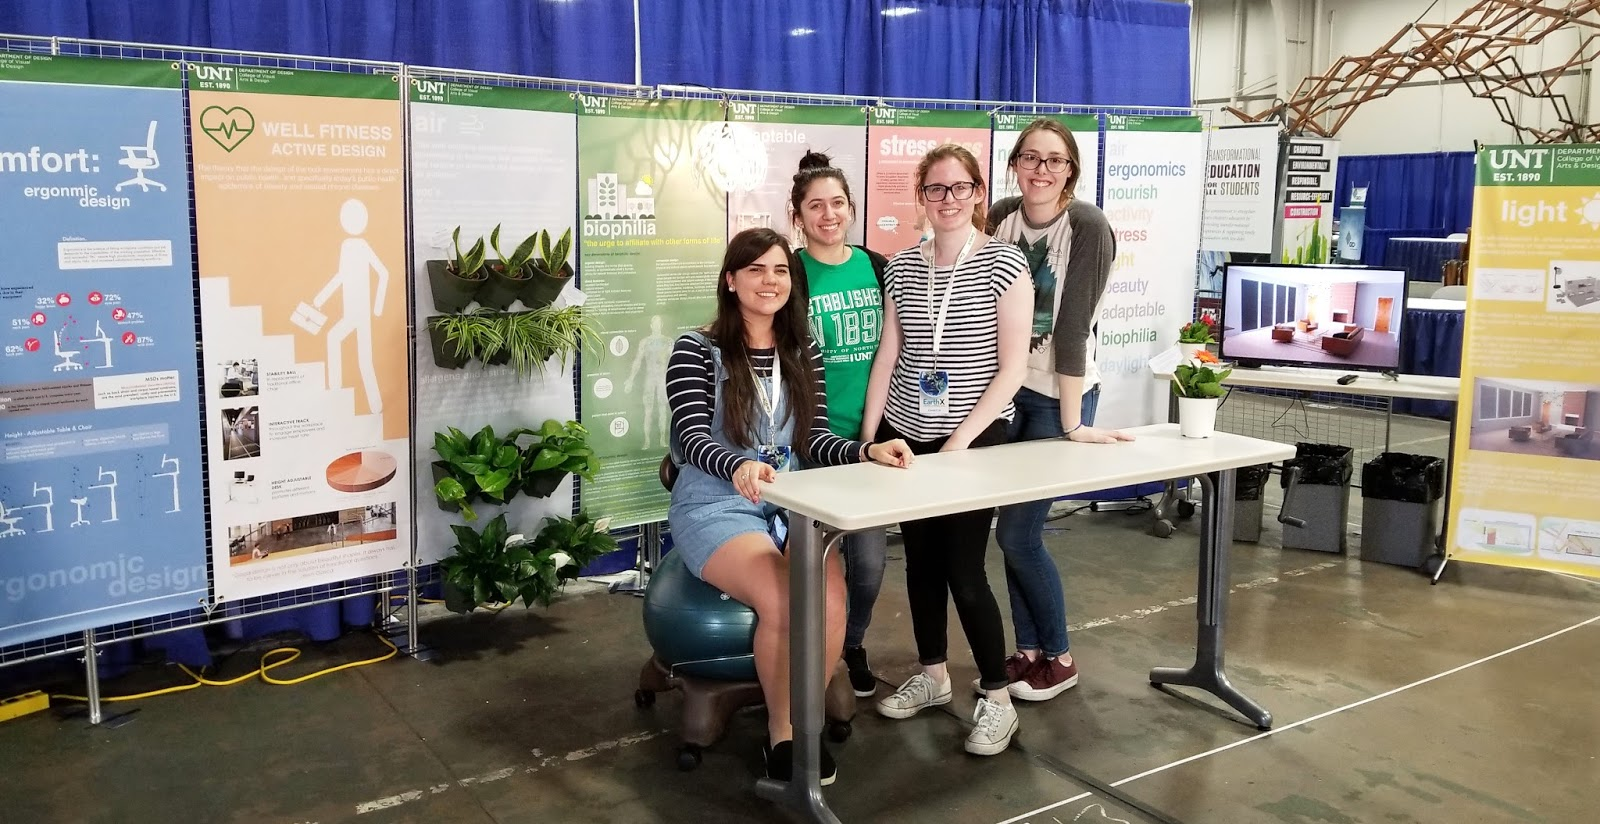 UNT CVAD Interior Design program booth was located in the Automotive Building. It was great success to represent UNT ID program incorporated with ...